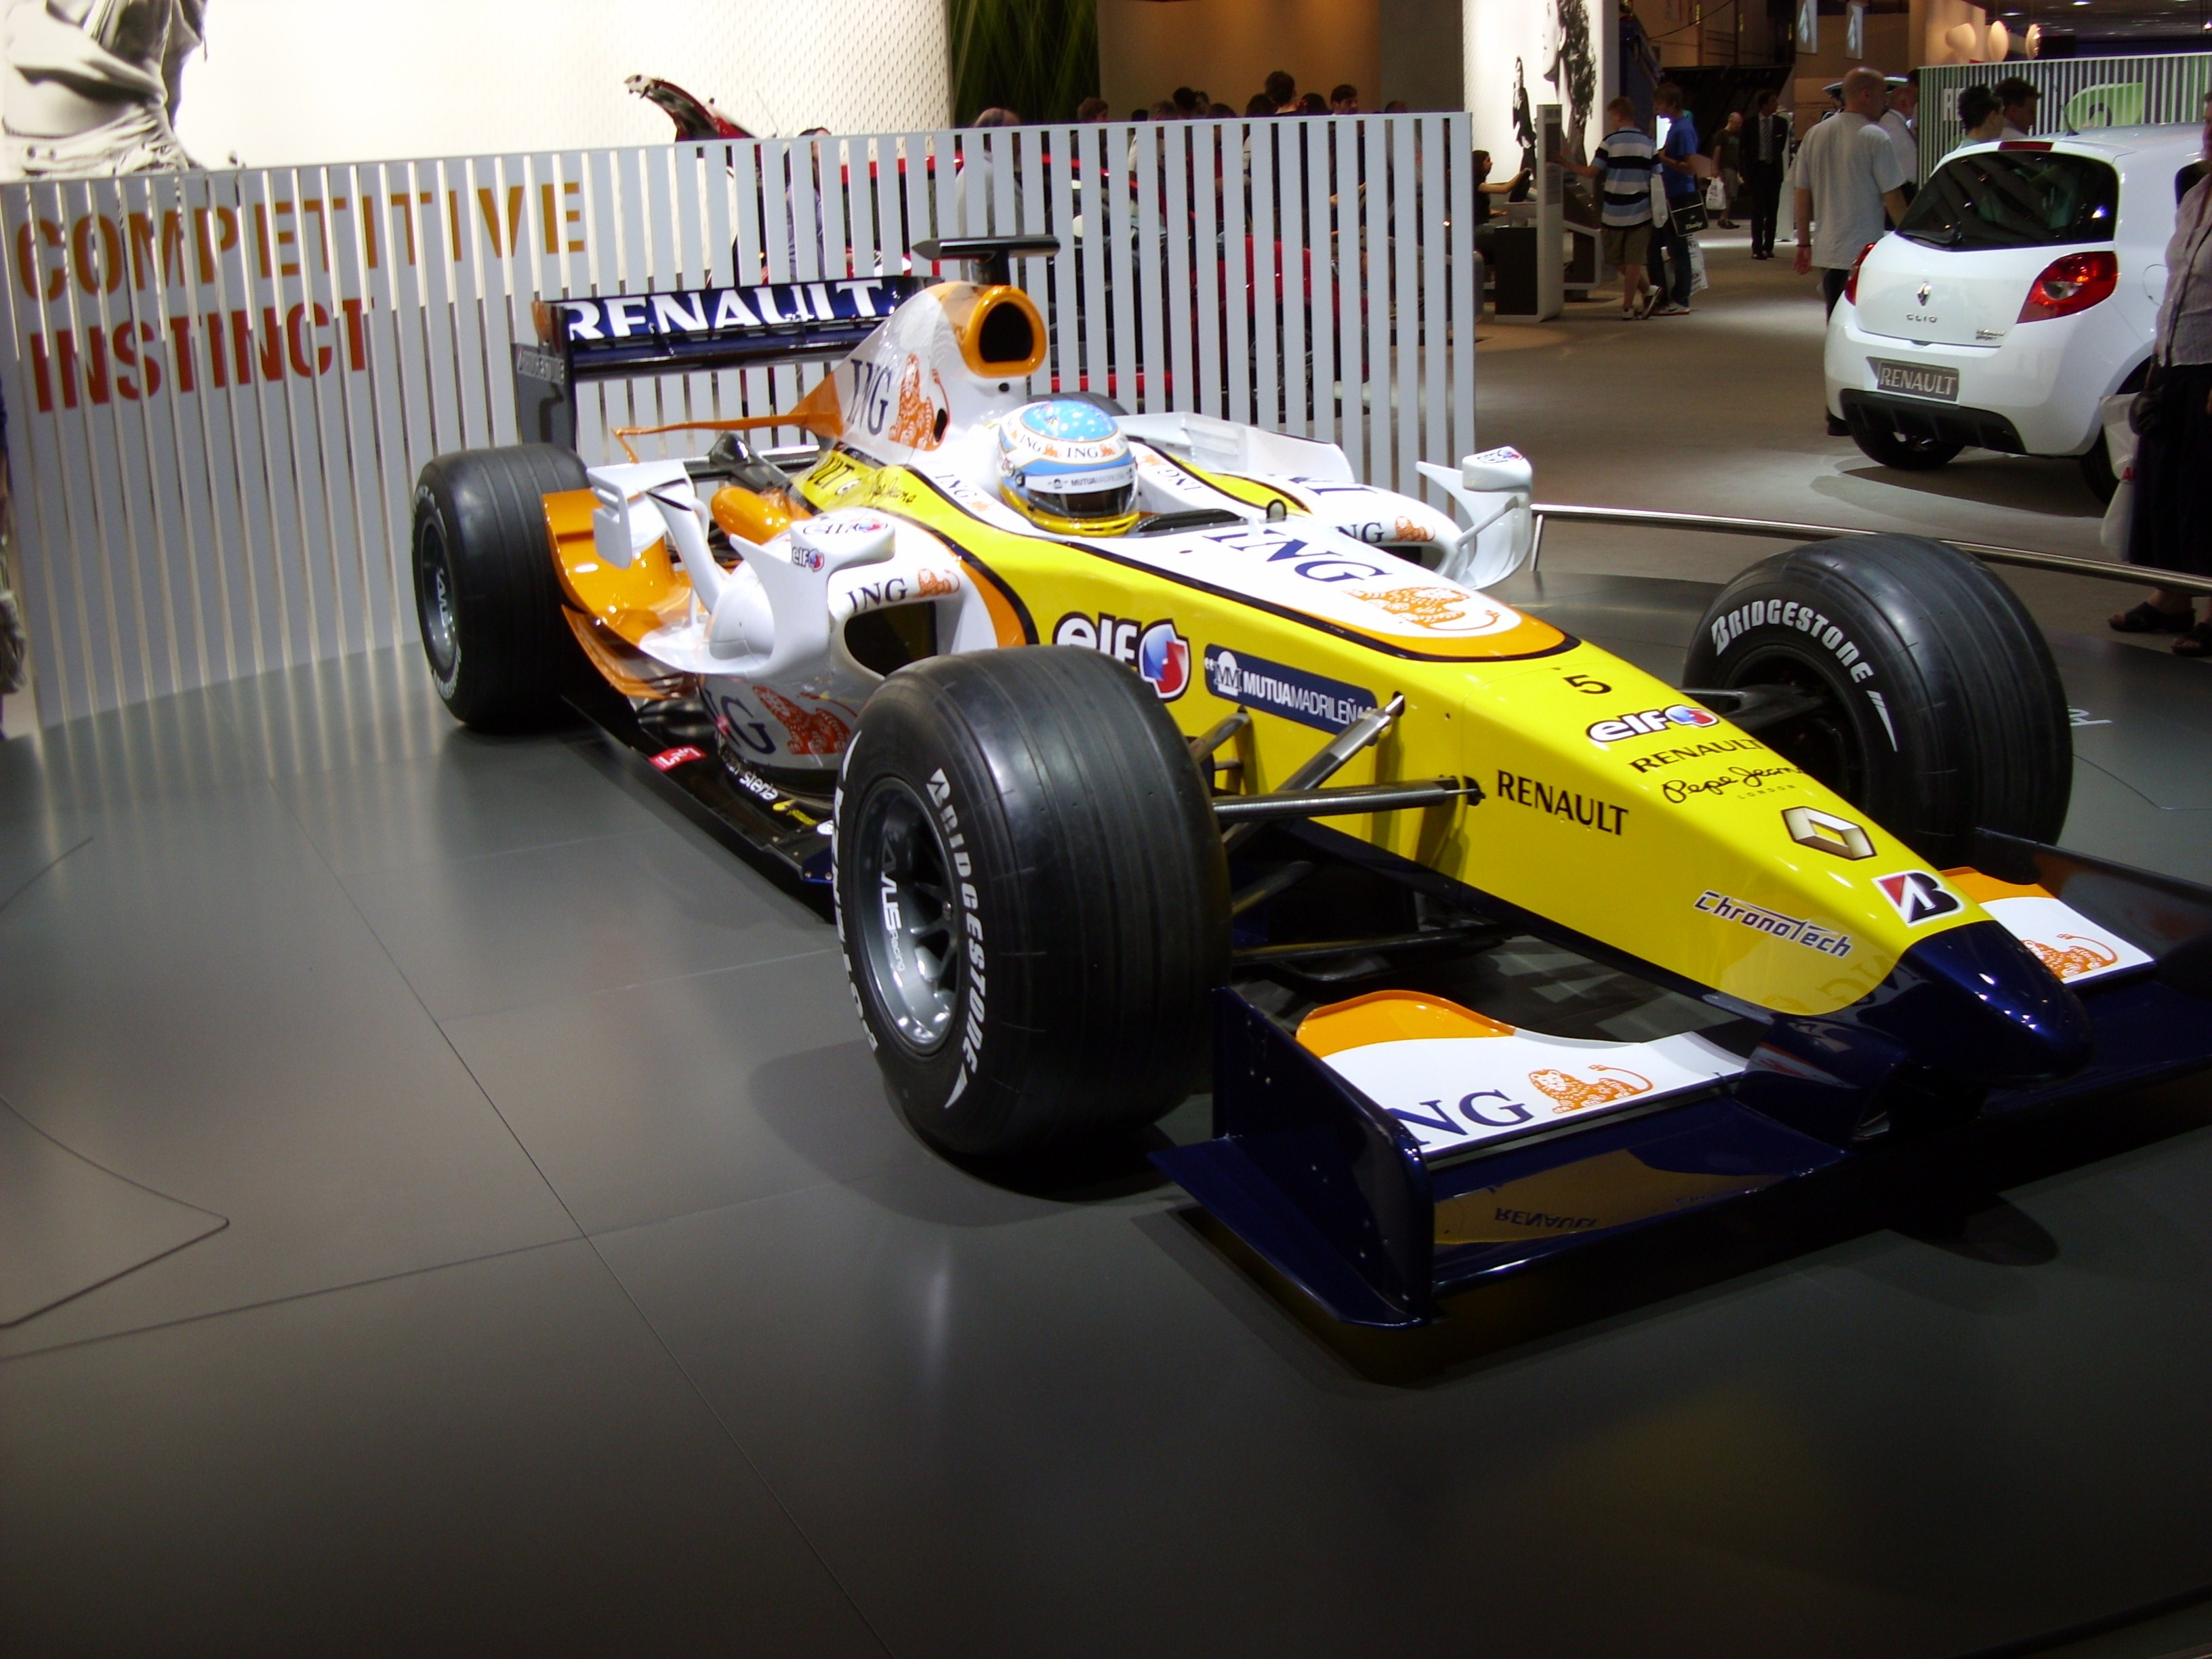 Renault r28 photo - 7